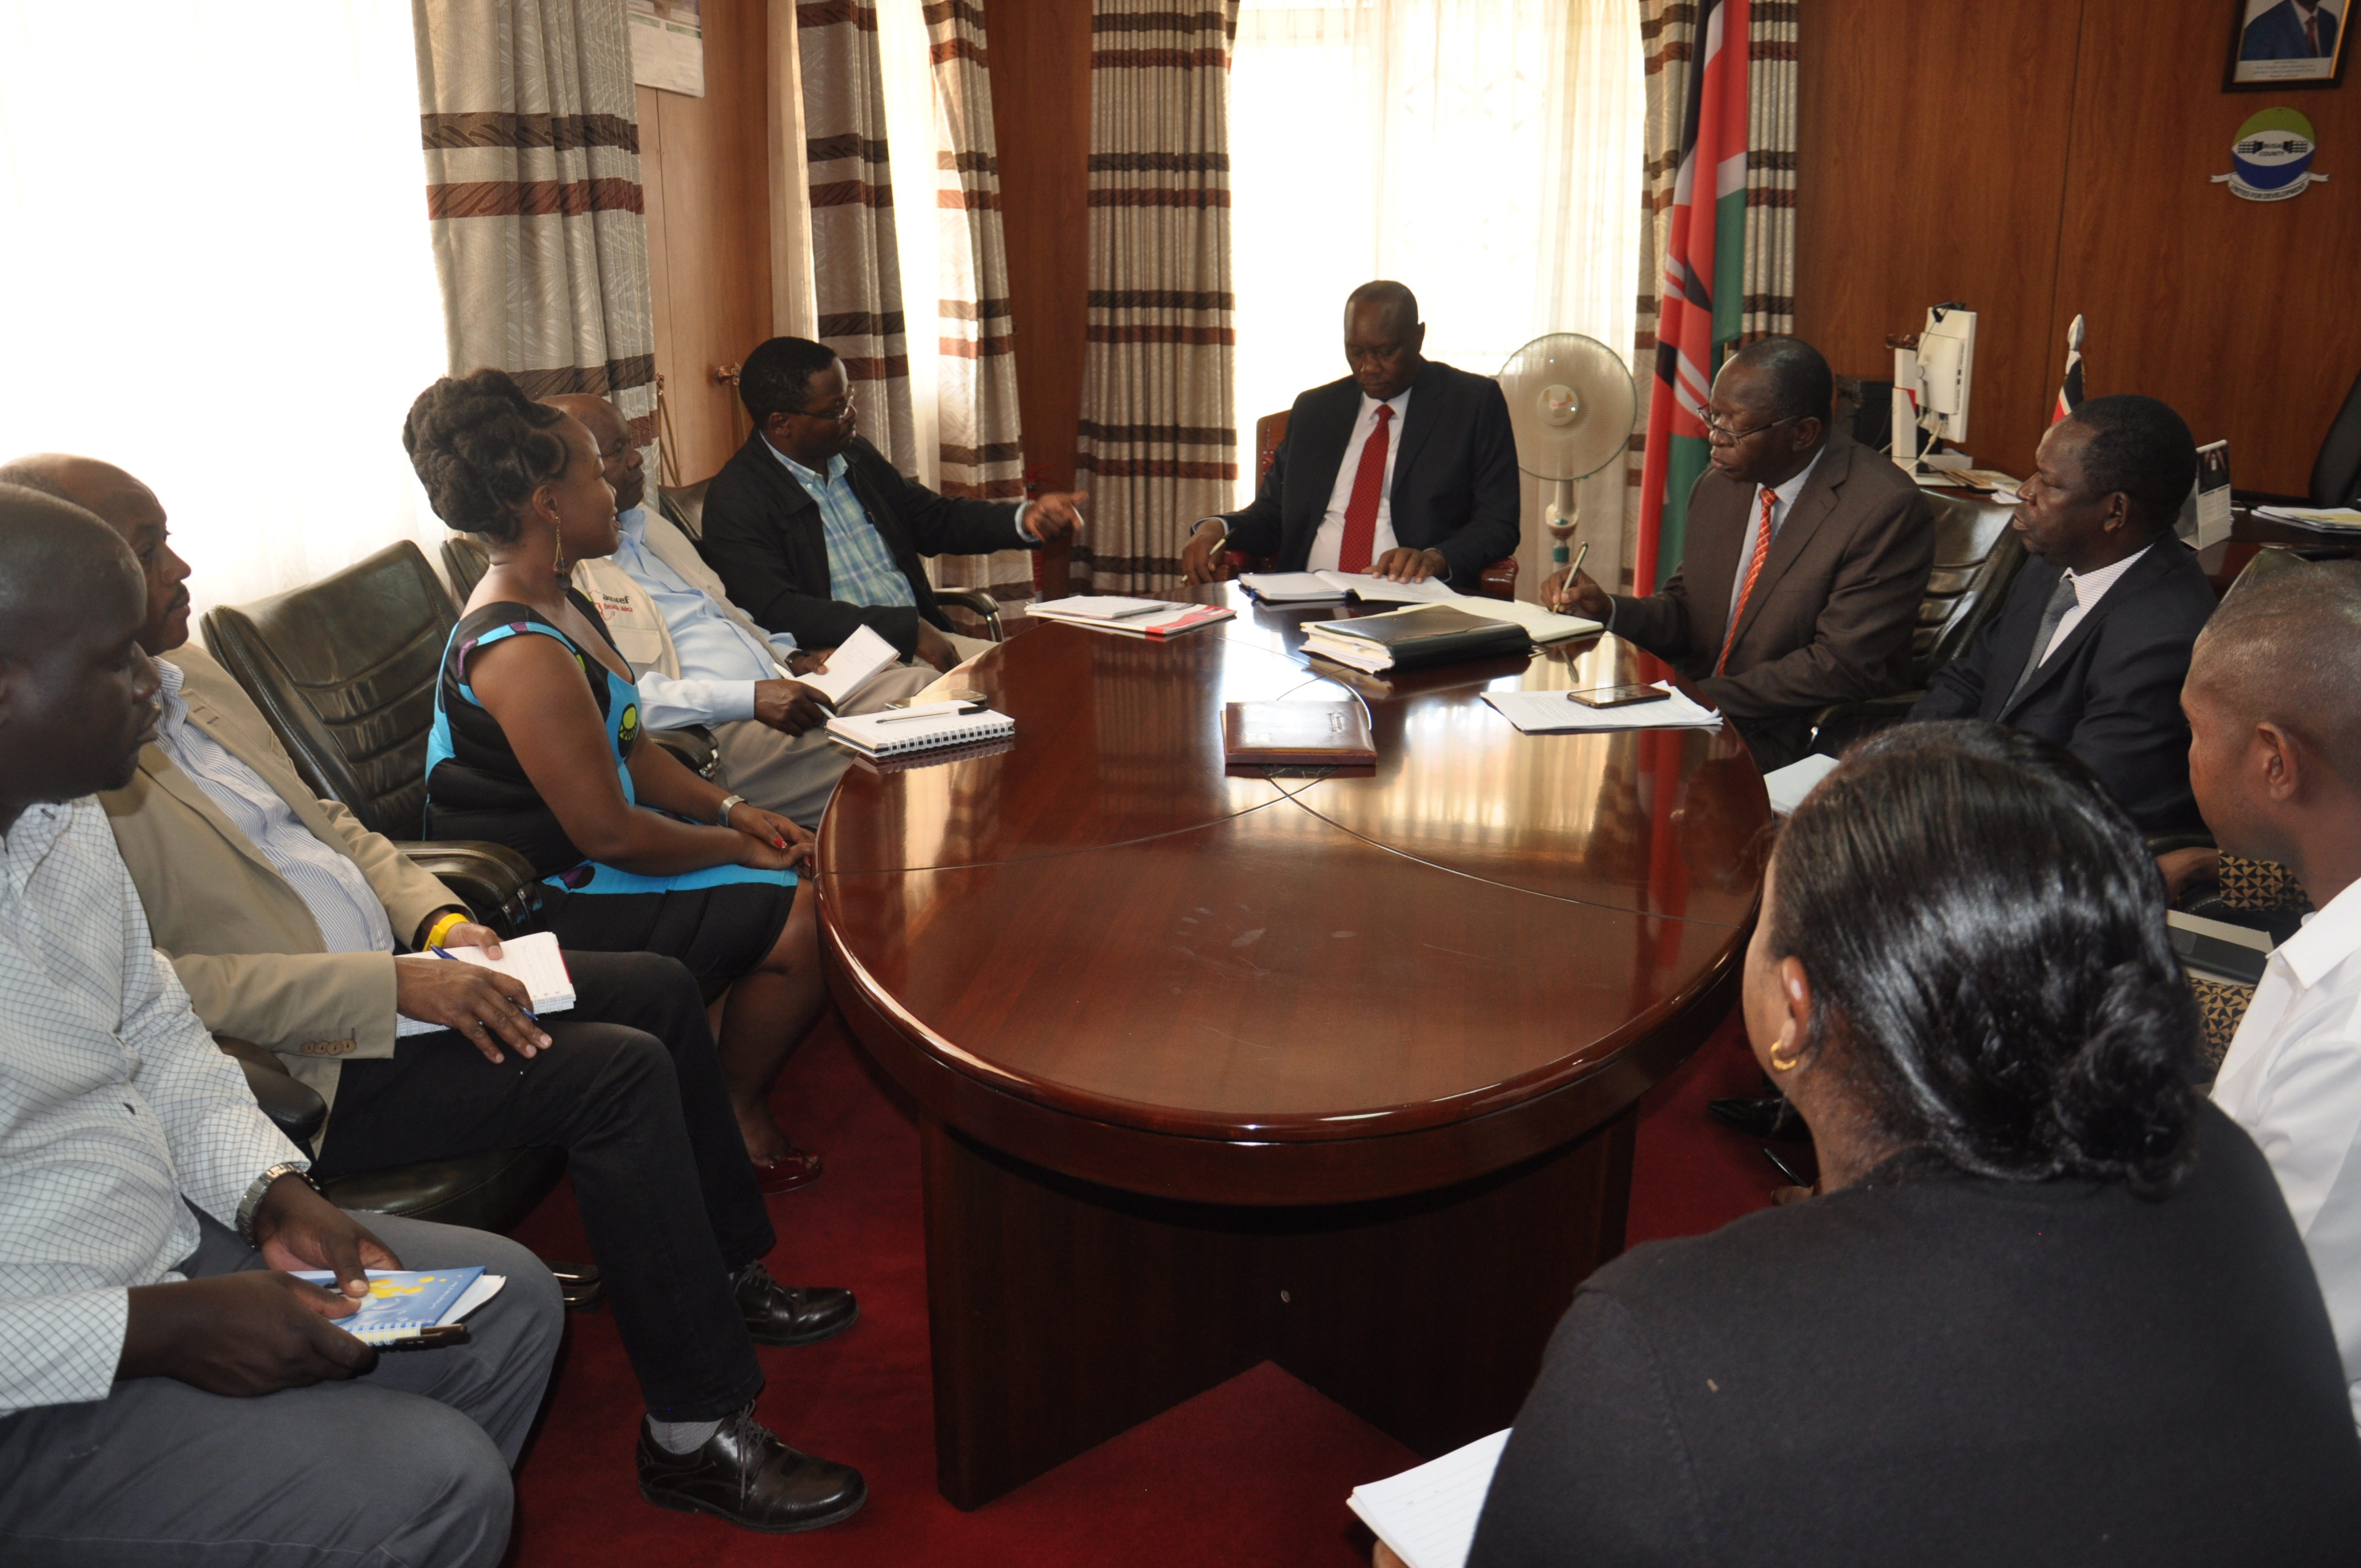 A team from Amref Health Africa in Kenya visits Busia County Governor to share insights on Amref's work